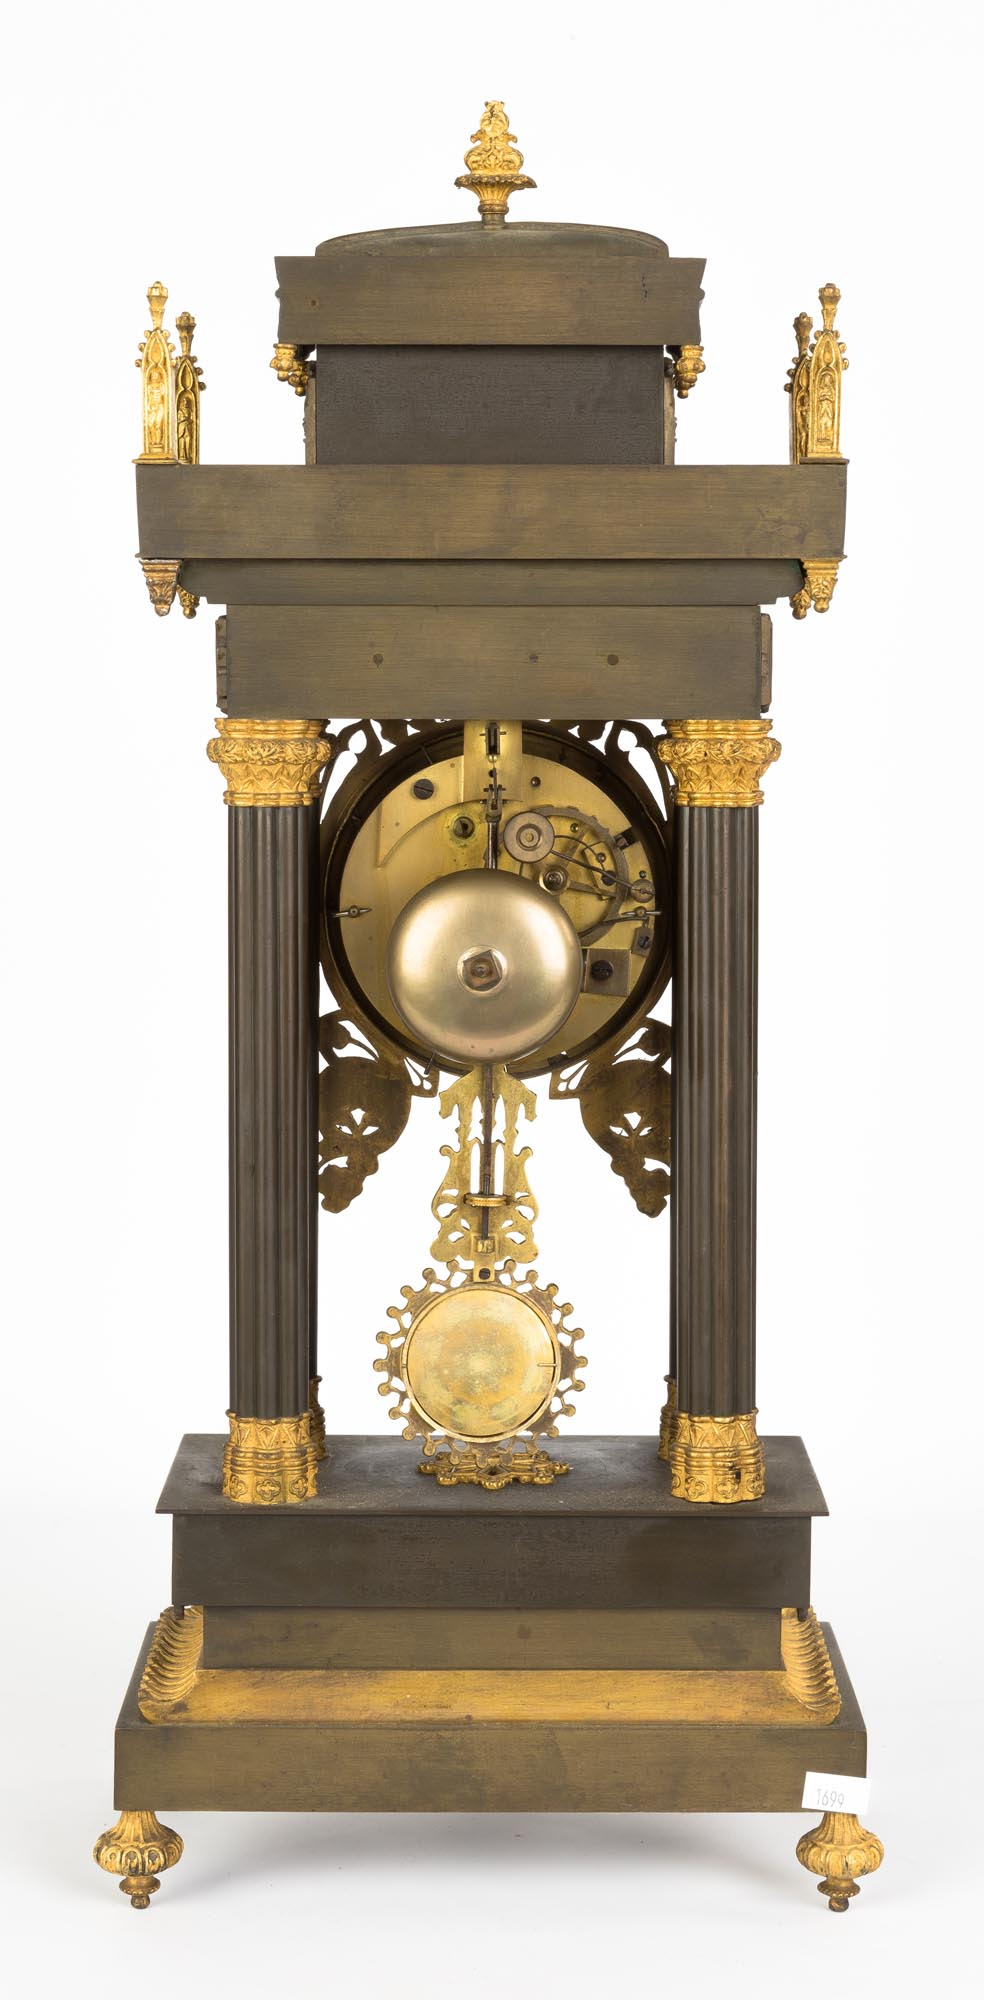 Lot 264 - French Gothic Bronze Shelf Clock. Mid 19th century. Bronze and gilt bronze with silvered metal dial.